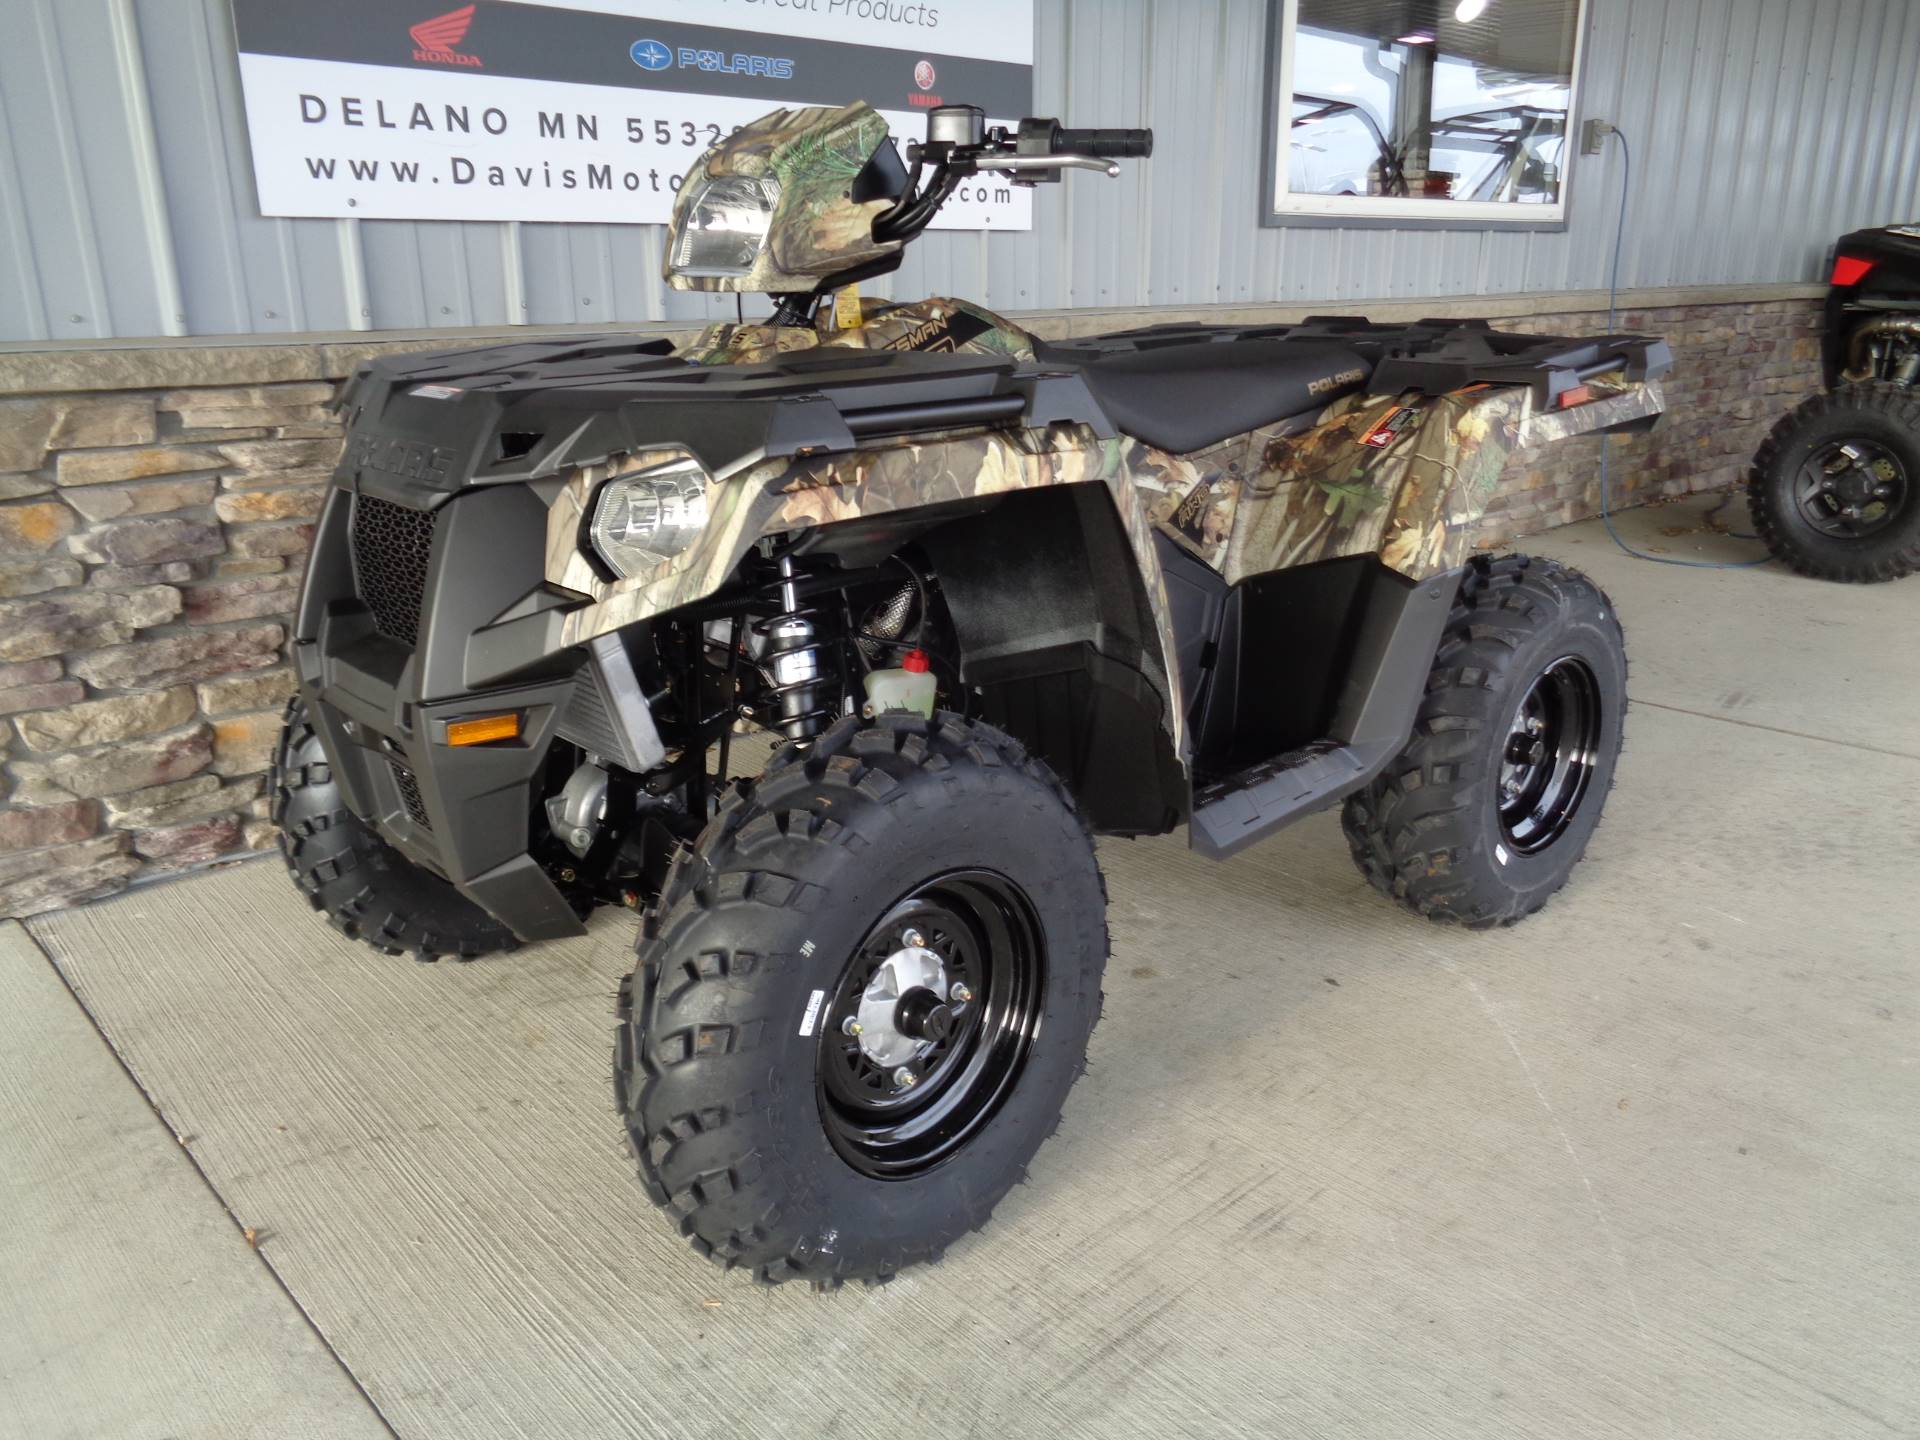 2019 Polaris Sportsman 570 EPS Camo in Delano, Minnesota - Photo 4